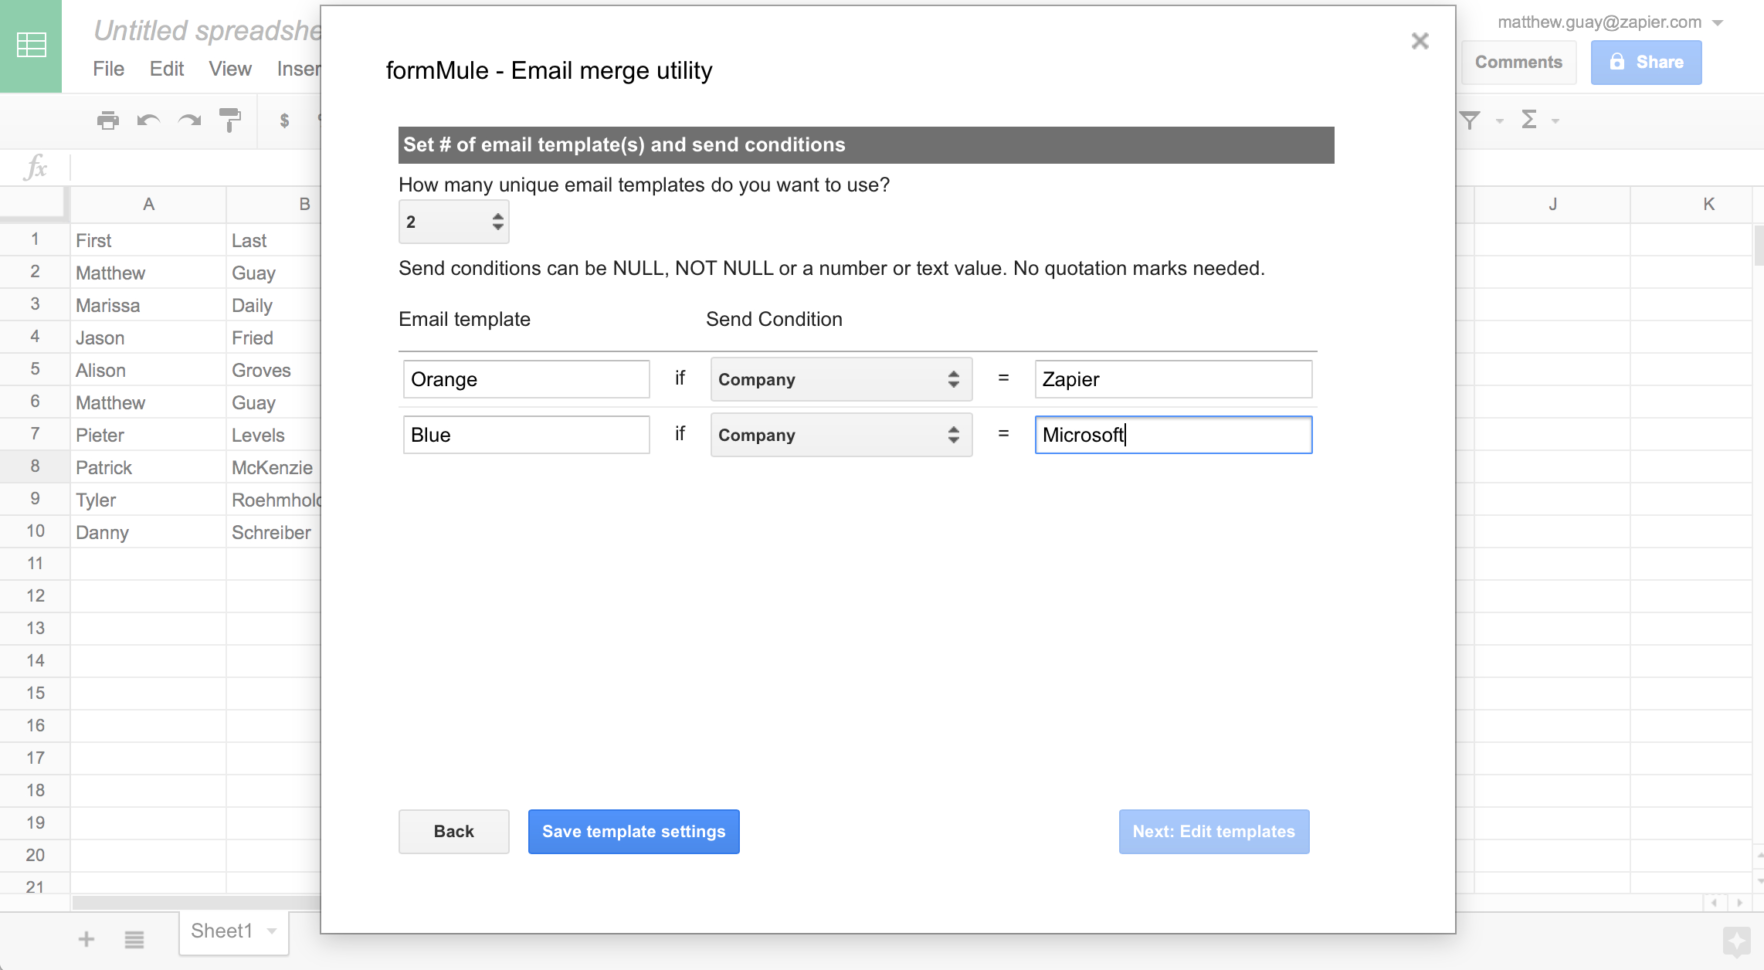 Google Sheets Spreadsheet With 50 Google Sheets Addons To Supercharge Your Spreadsheets  The